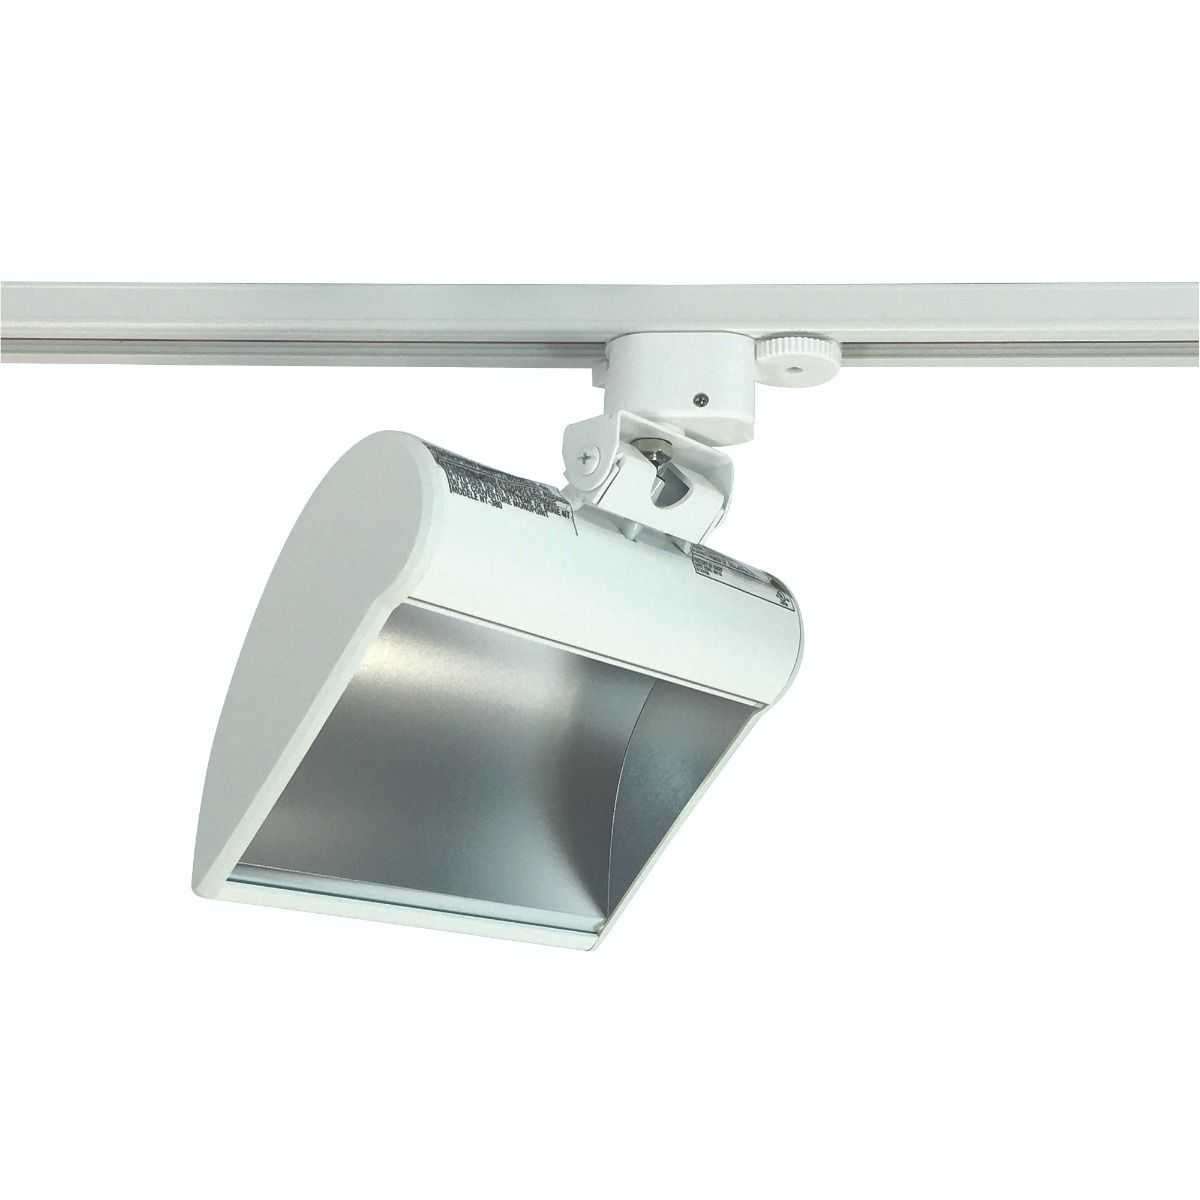 Architectural Led Track Lighting: Alcon Lighting 13252 Metropolitan Architectural LED Track